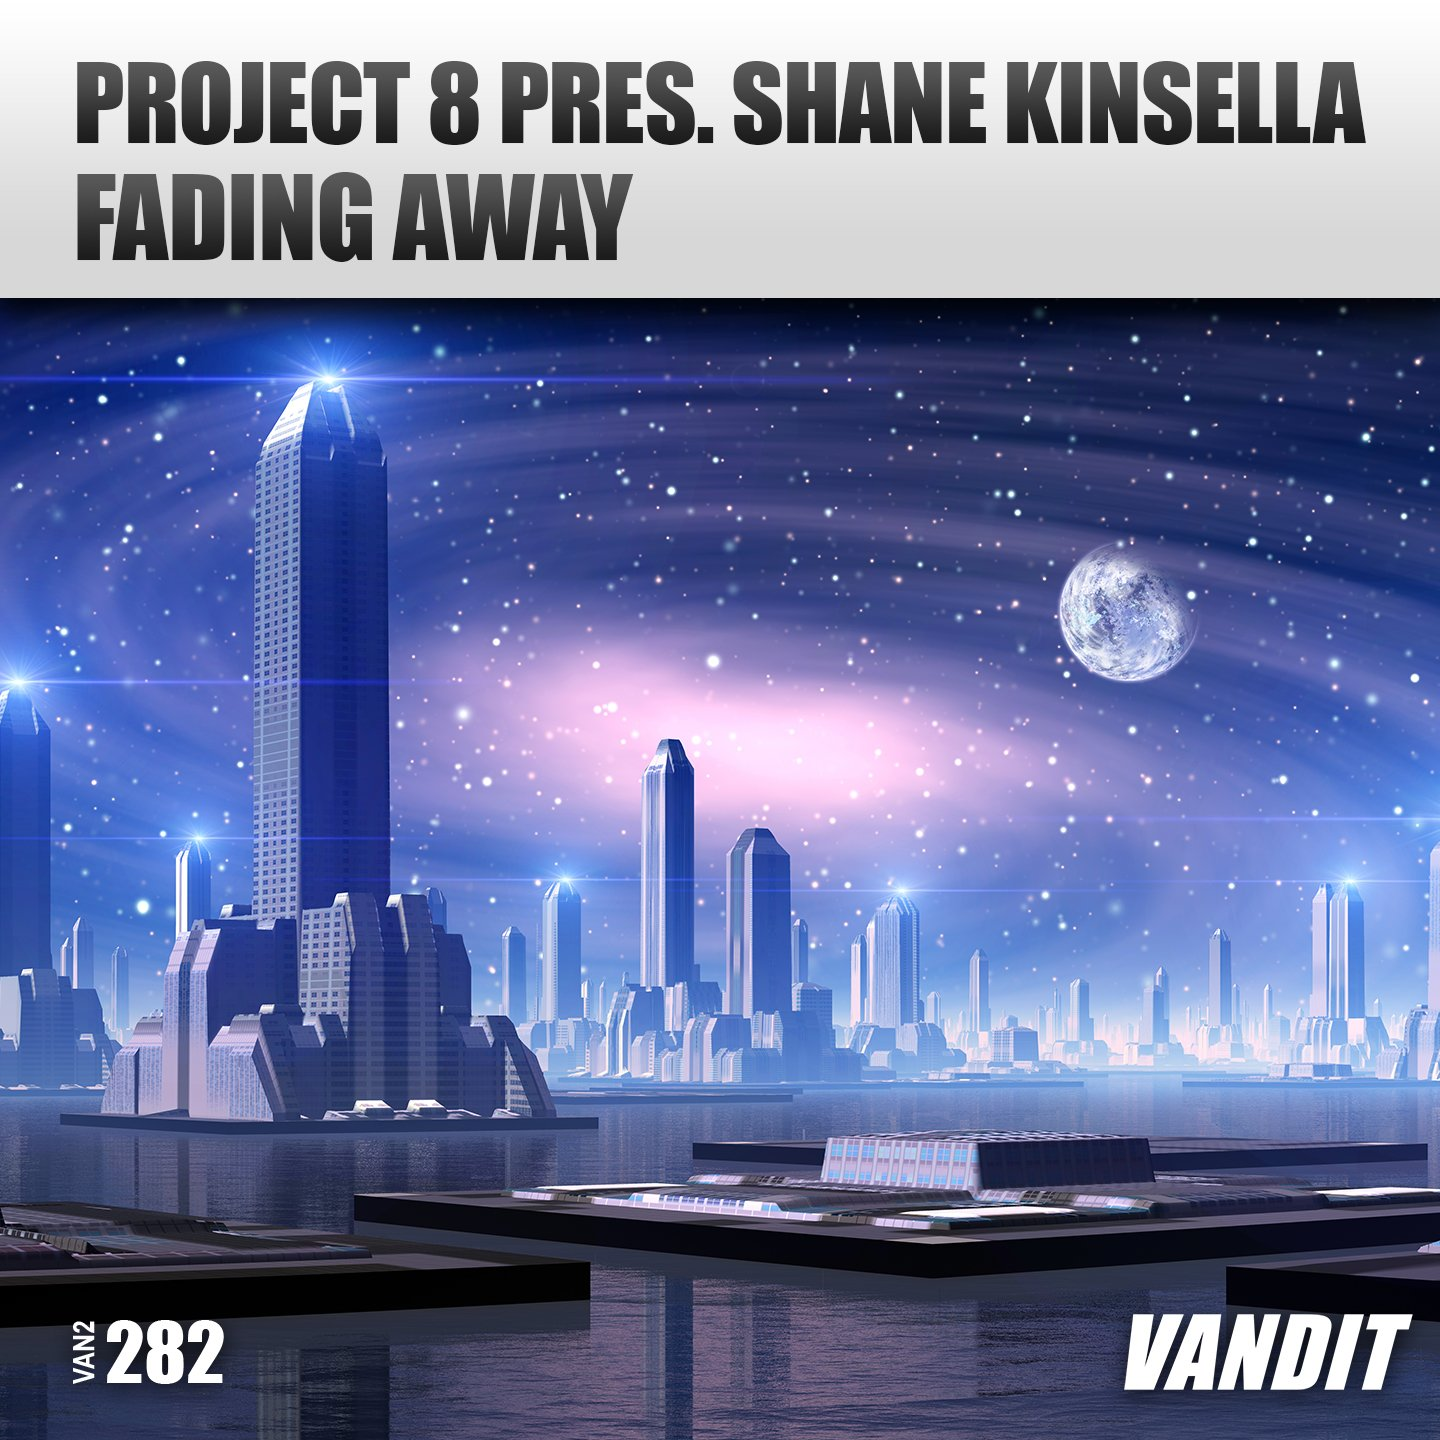 Out now on @vanditrecords  @Project8Music pres. Shane Kinsella - Fading Away https://t.co/Q6DFOEiun5 https://t.co/8pTTpfQQDB